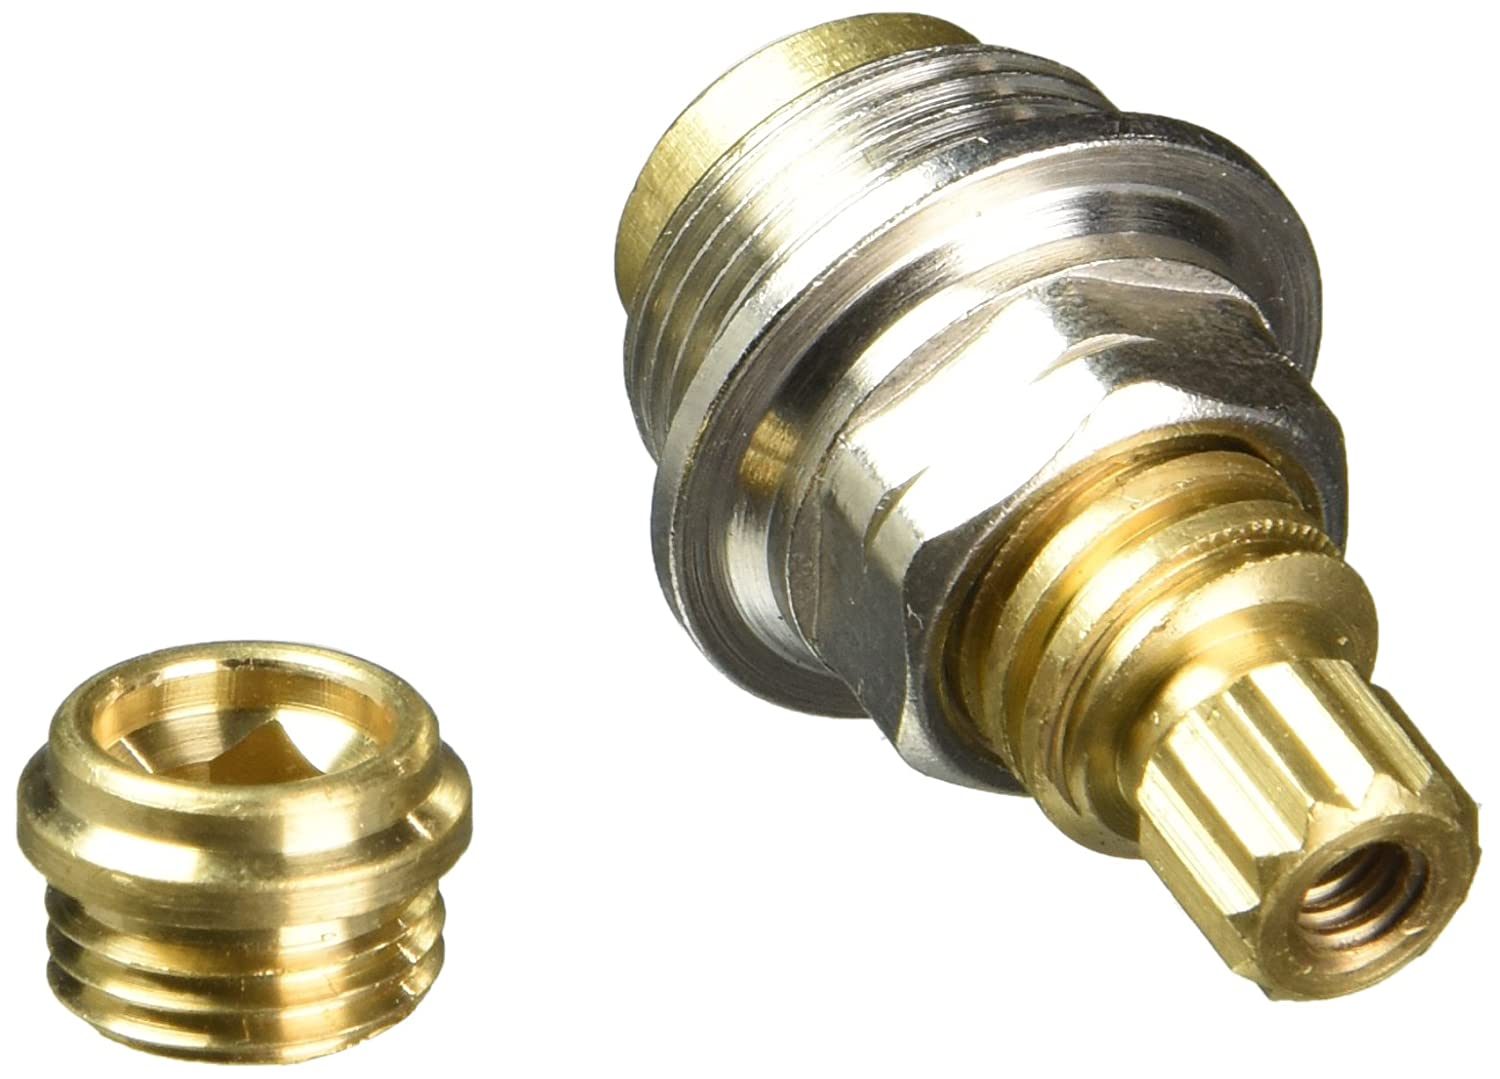 Danco, Inc. 15289E 1H-1H Stem, for Use with Price Pfister Model Faucet, Metal, Brass